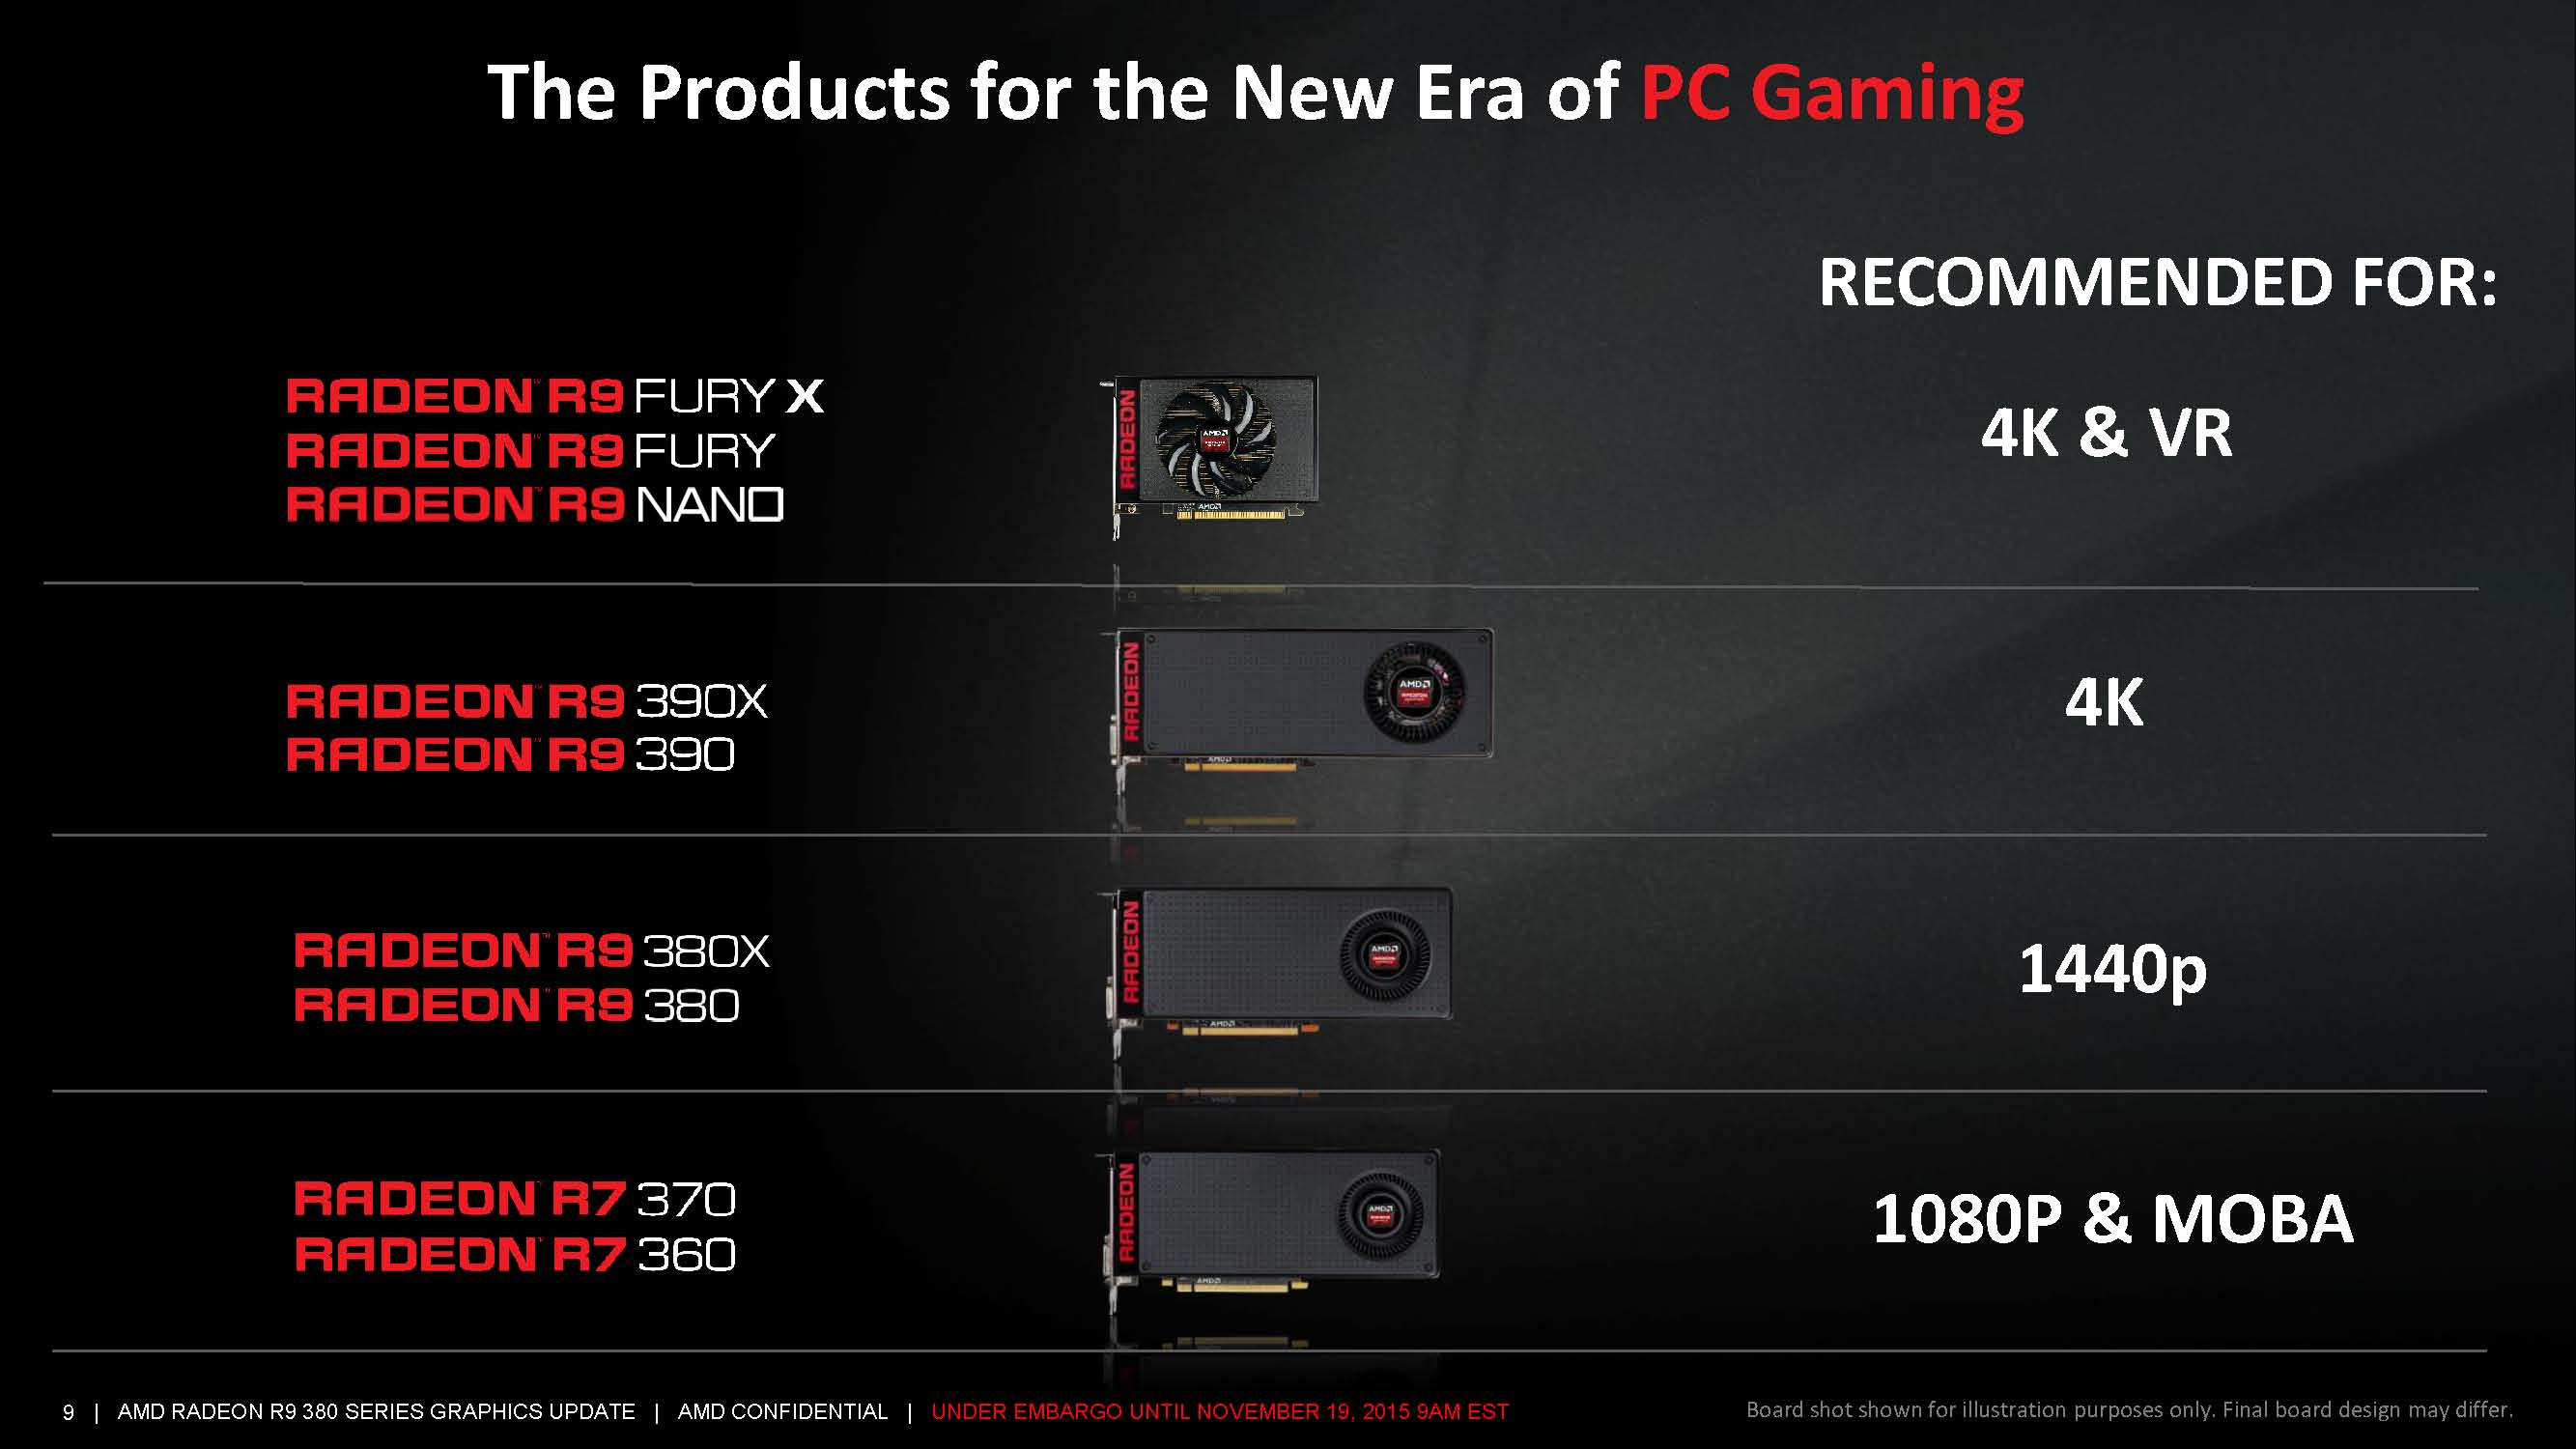 AMD Launches Radeon R9 380X Graphics Card 3